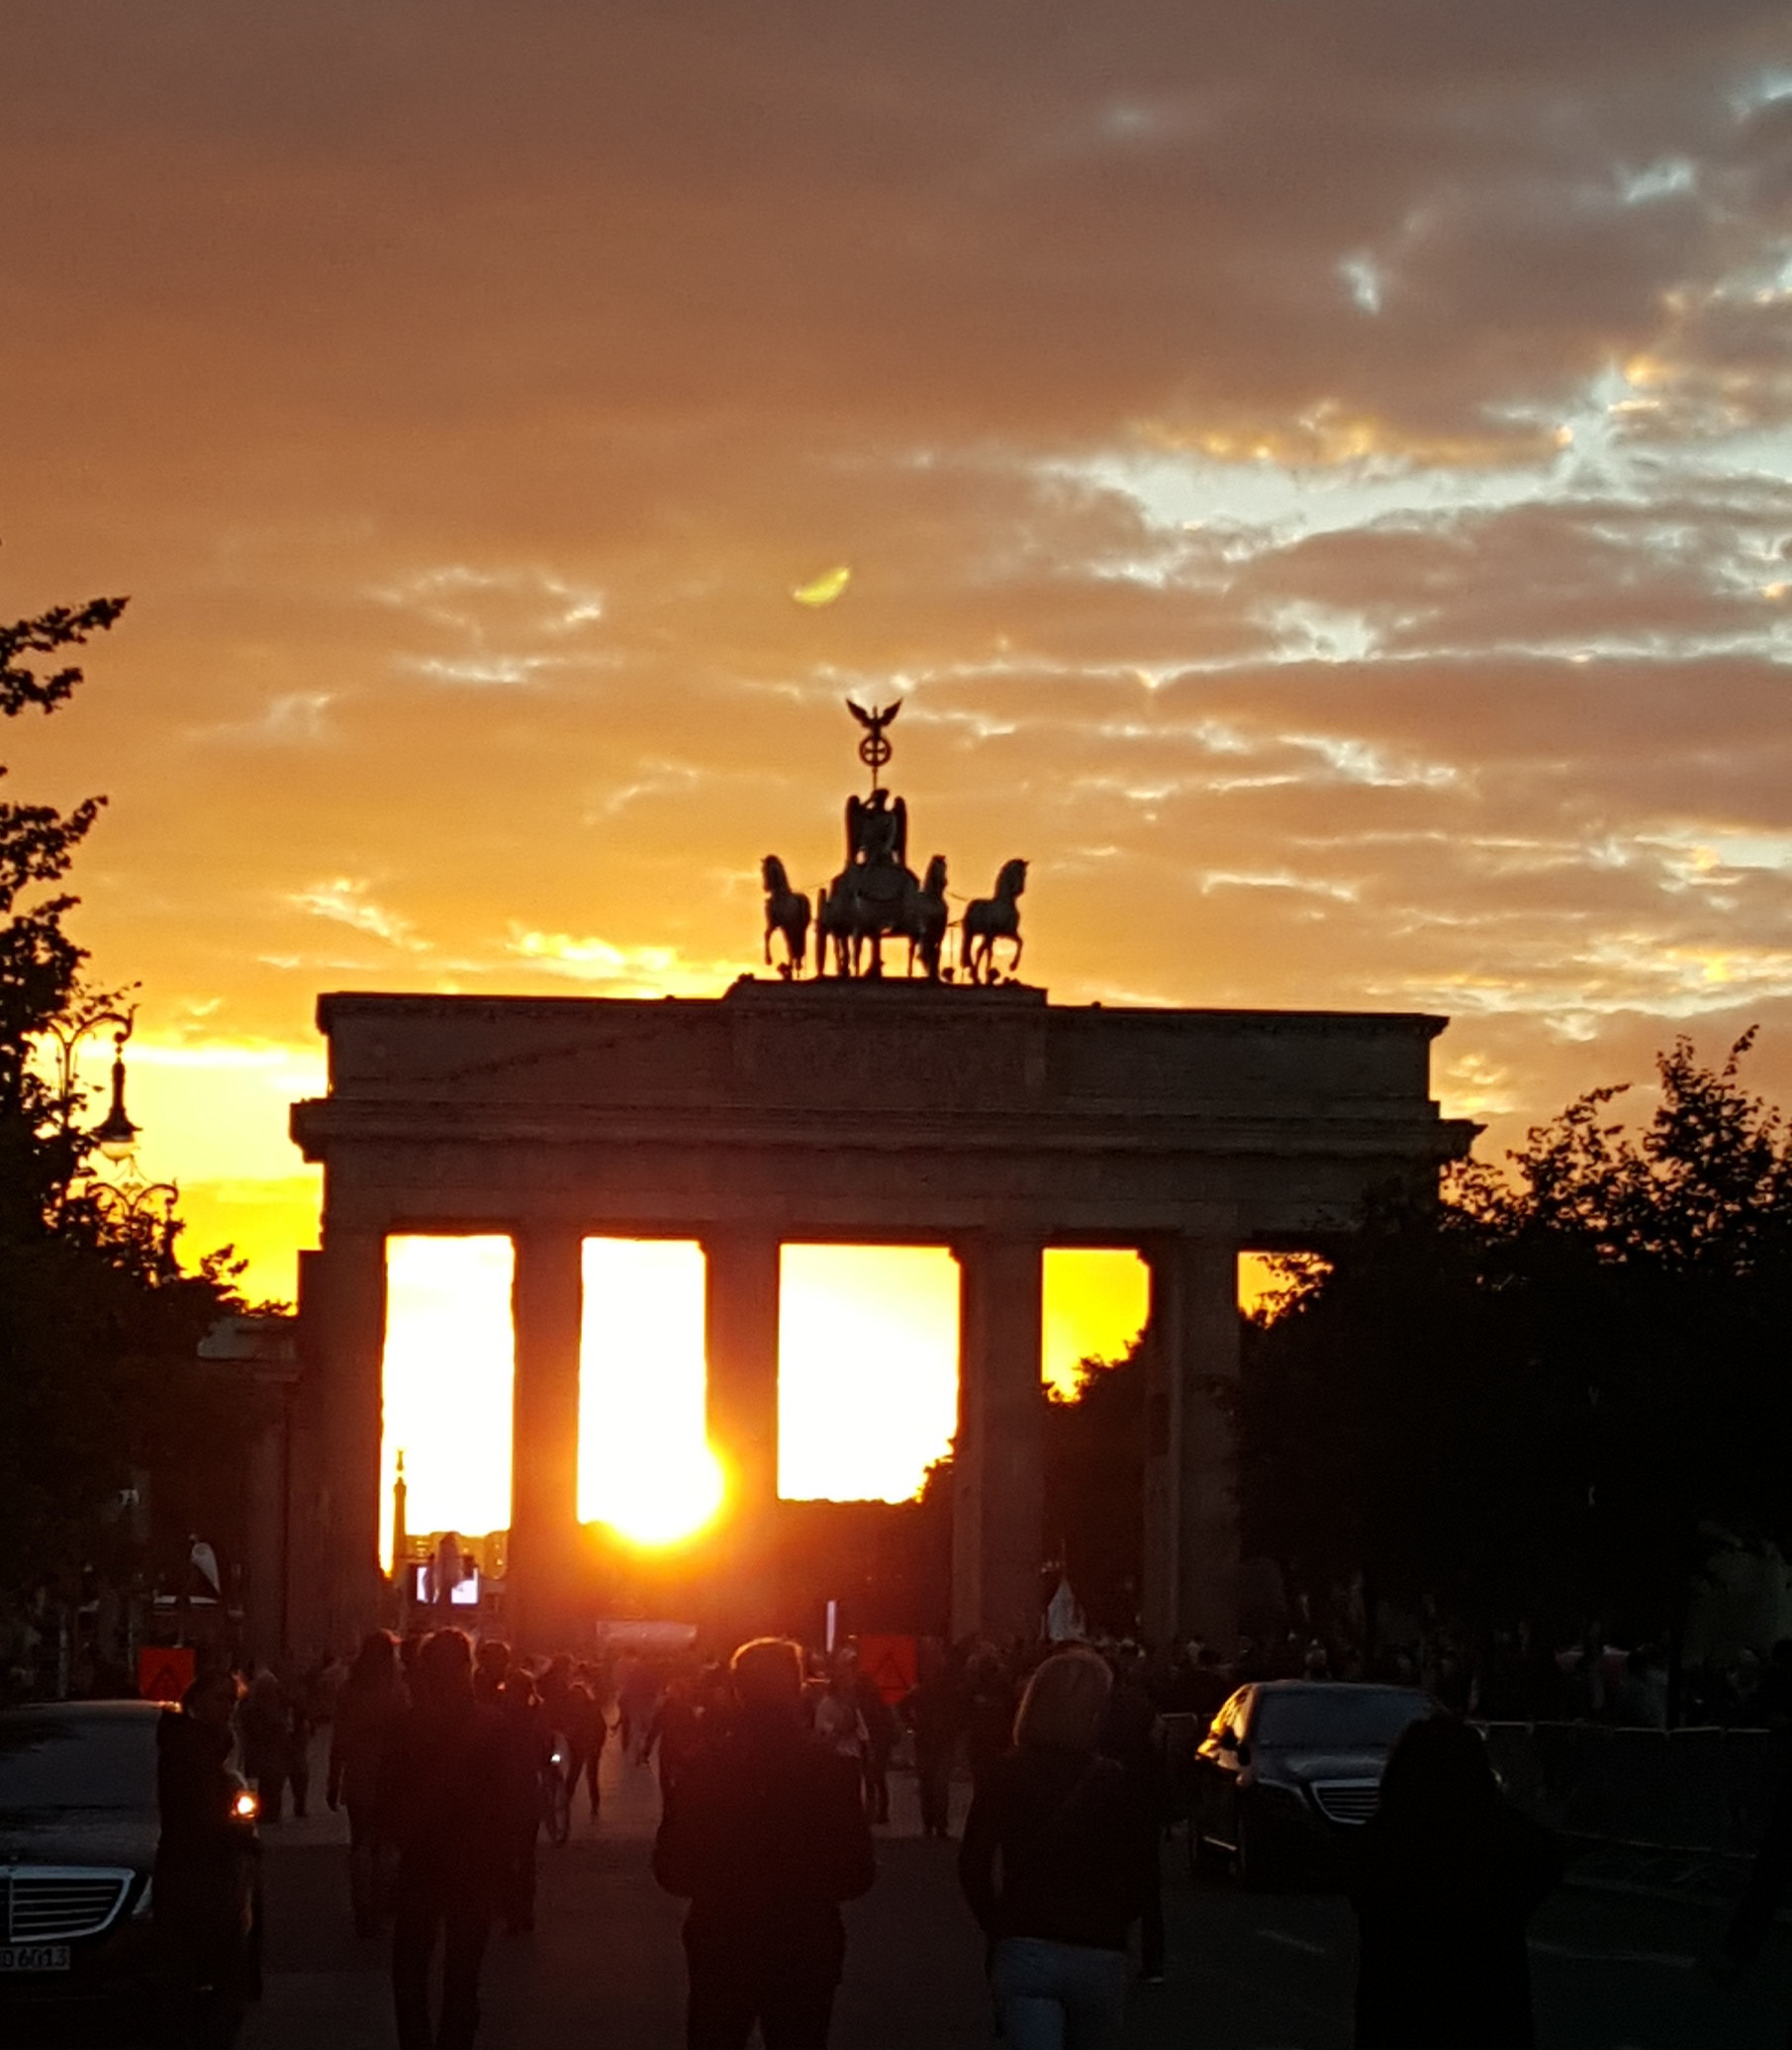 10 Things I Learned While Visiting Berlin